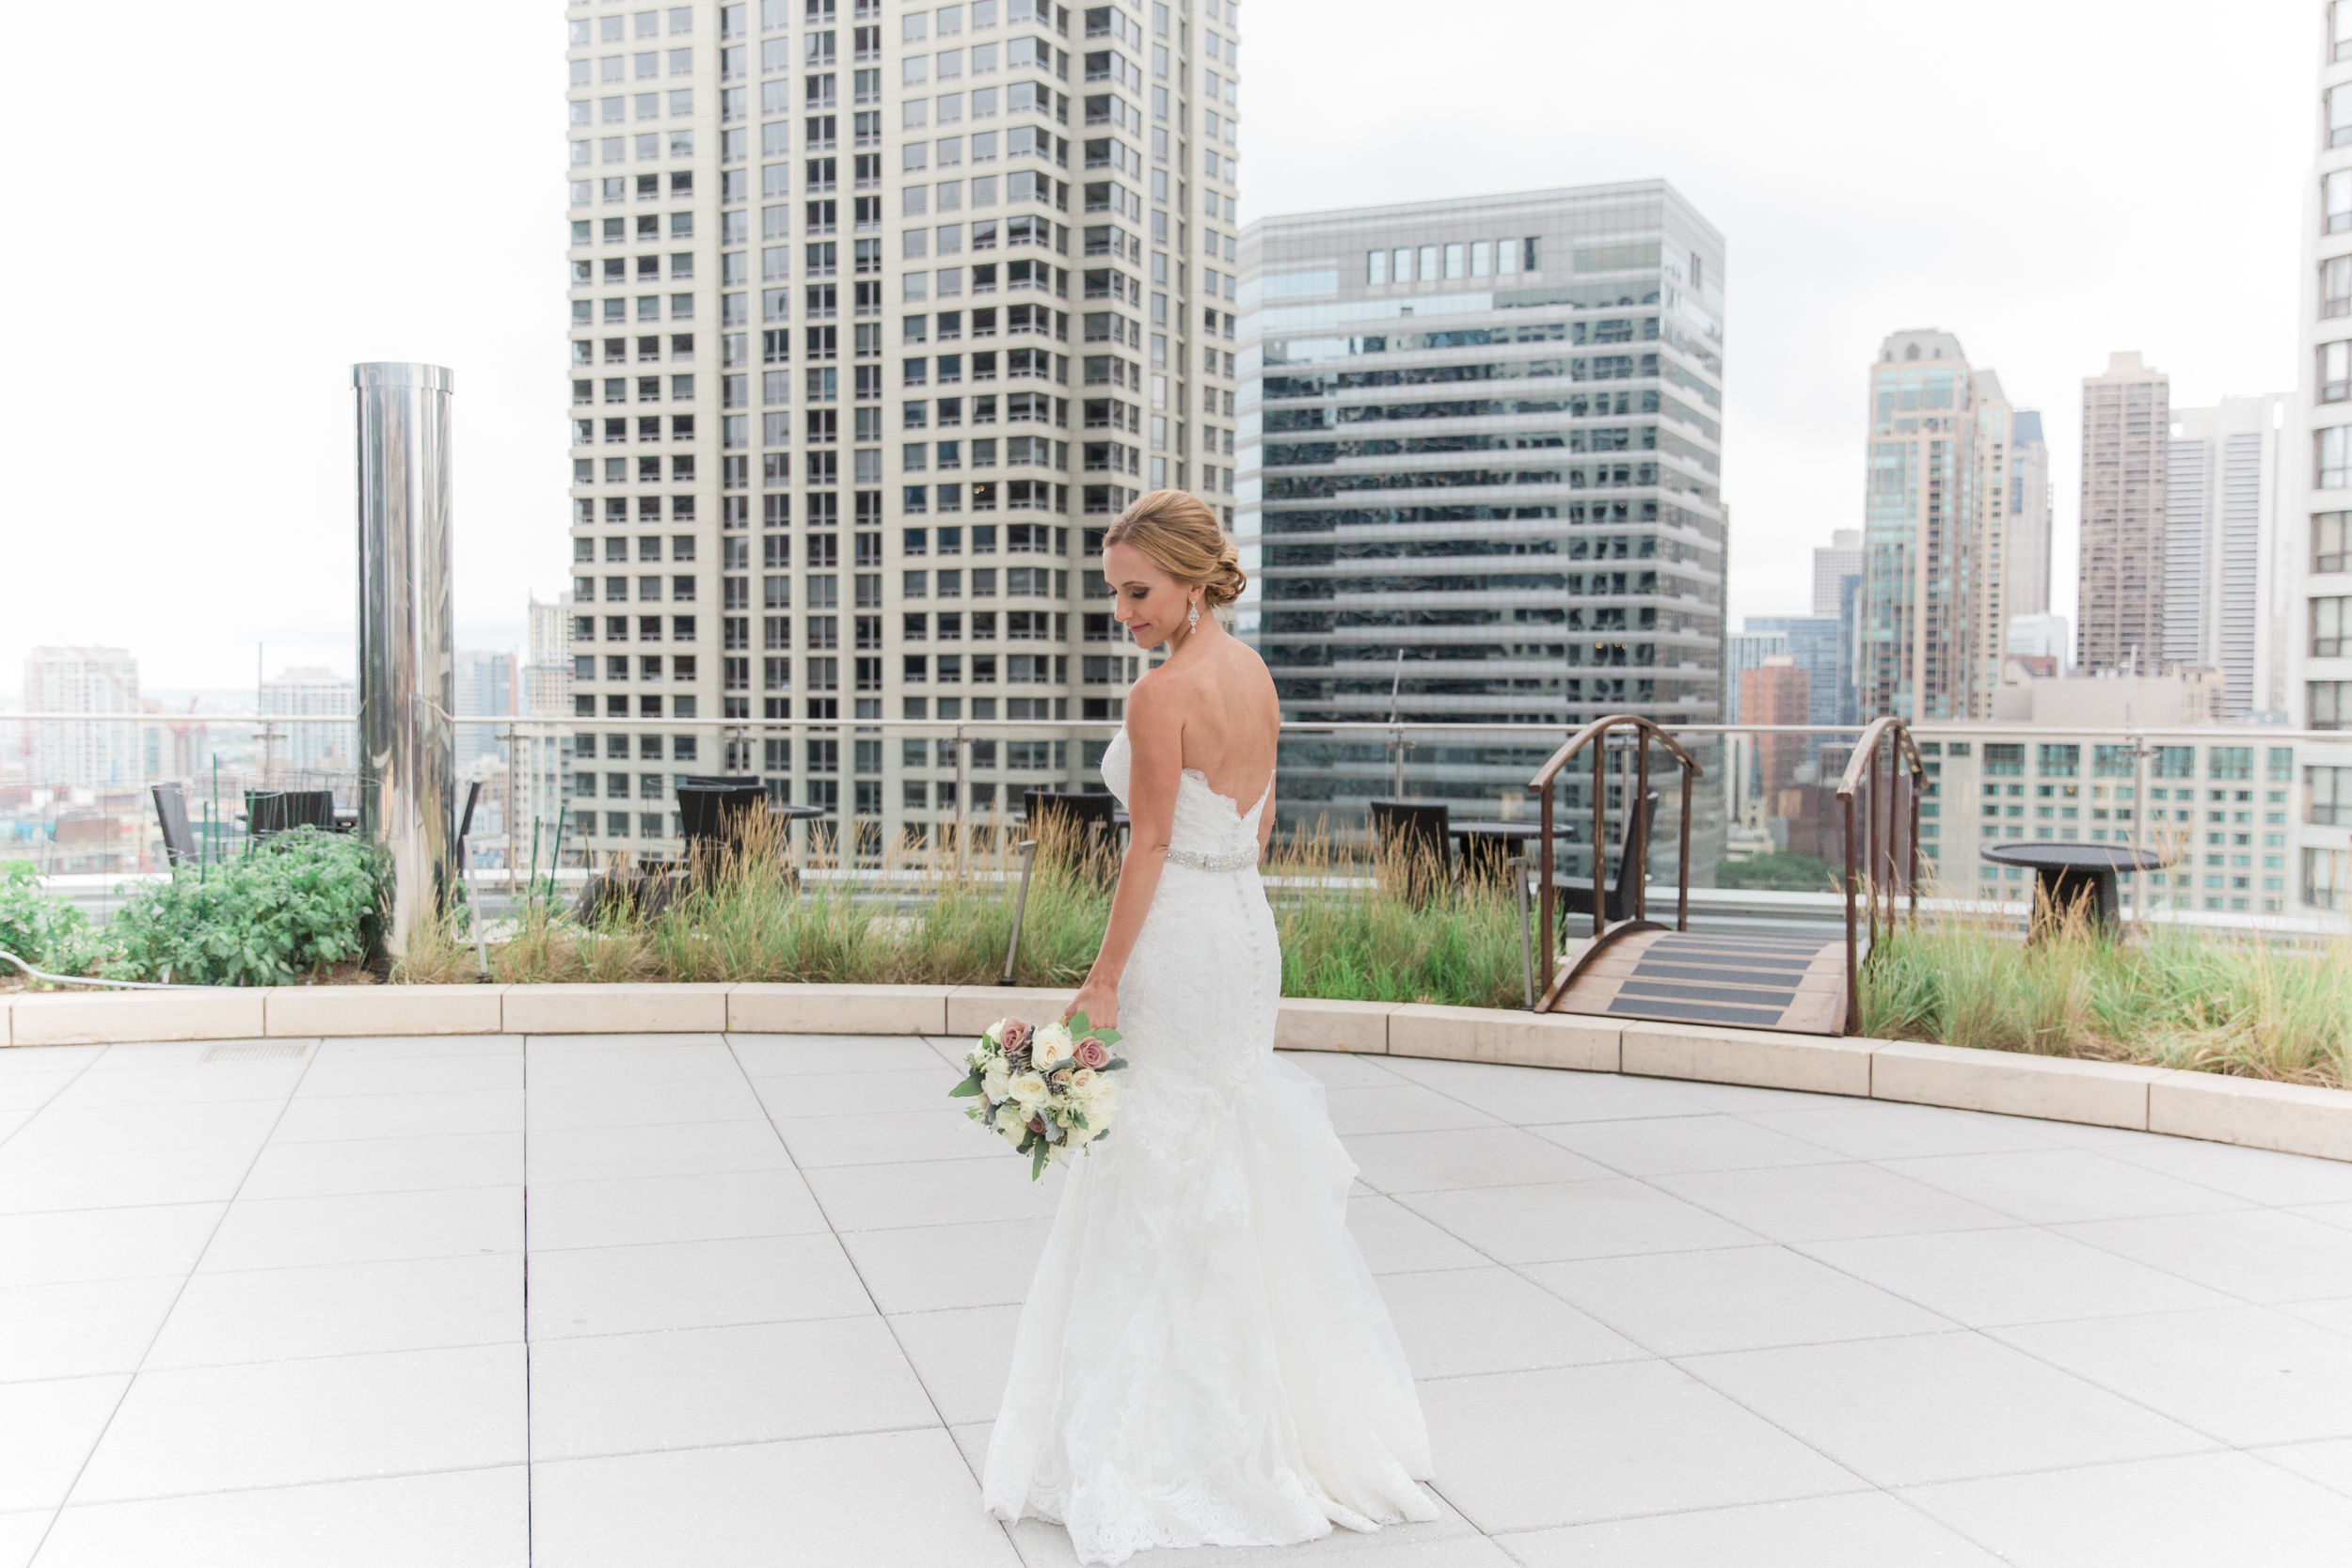 Bonphotage Wedding Photography - Chicago, Illinois